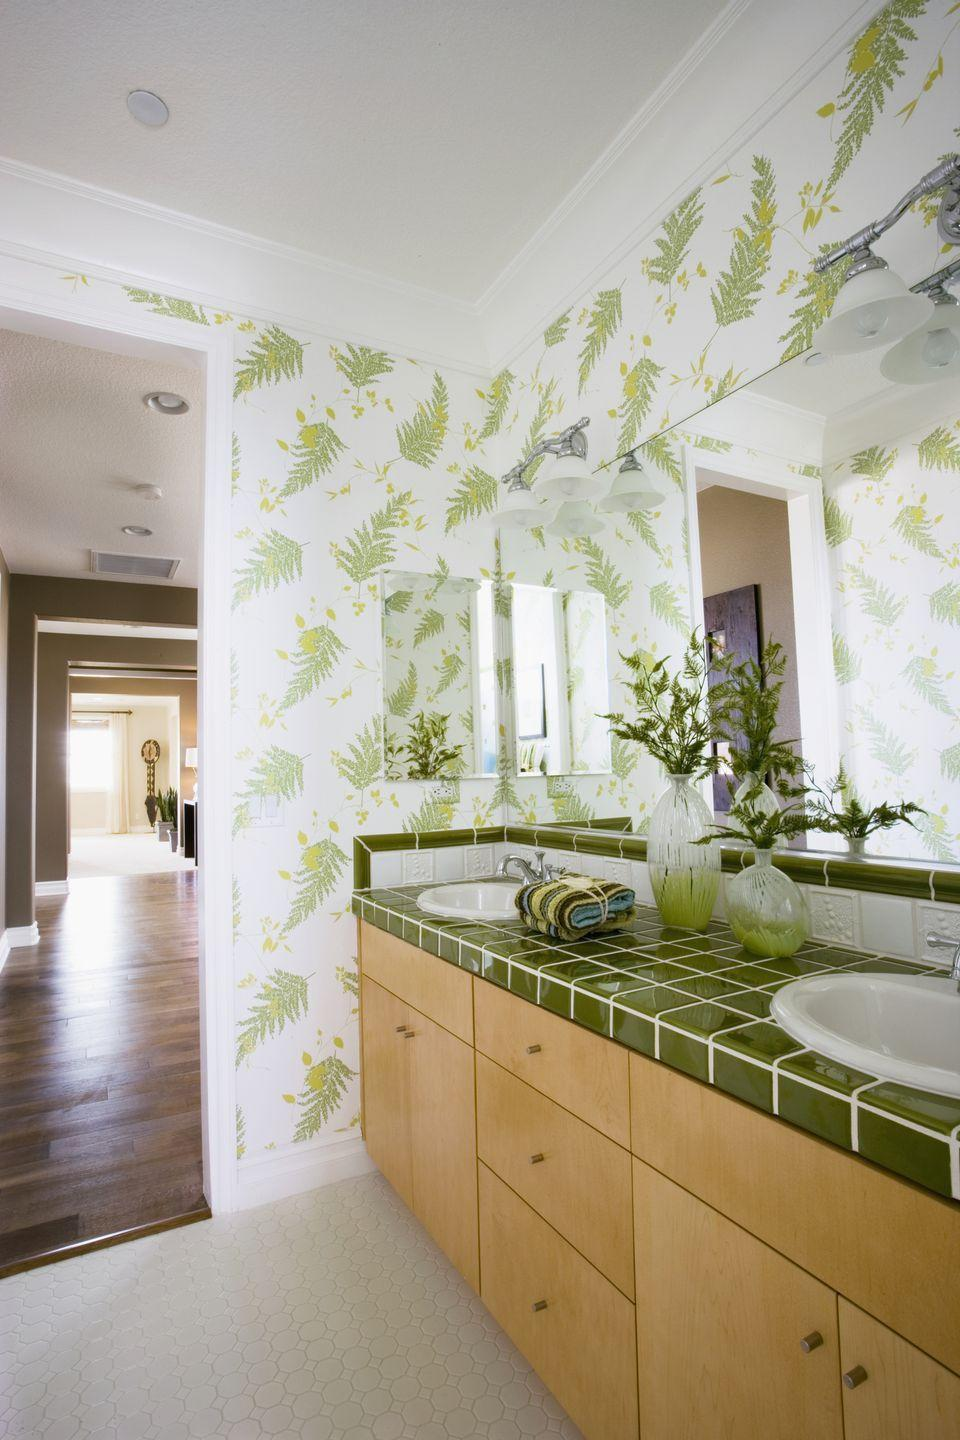 Outdated Home Trends We Hope Never to See Again